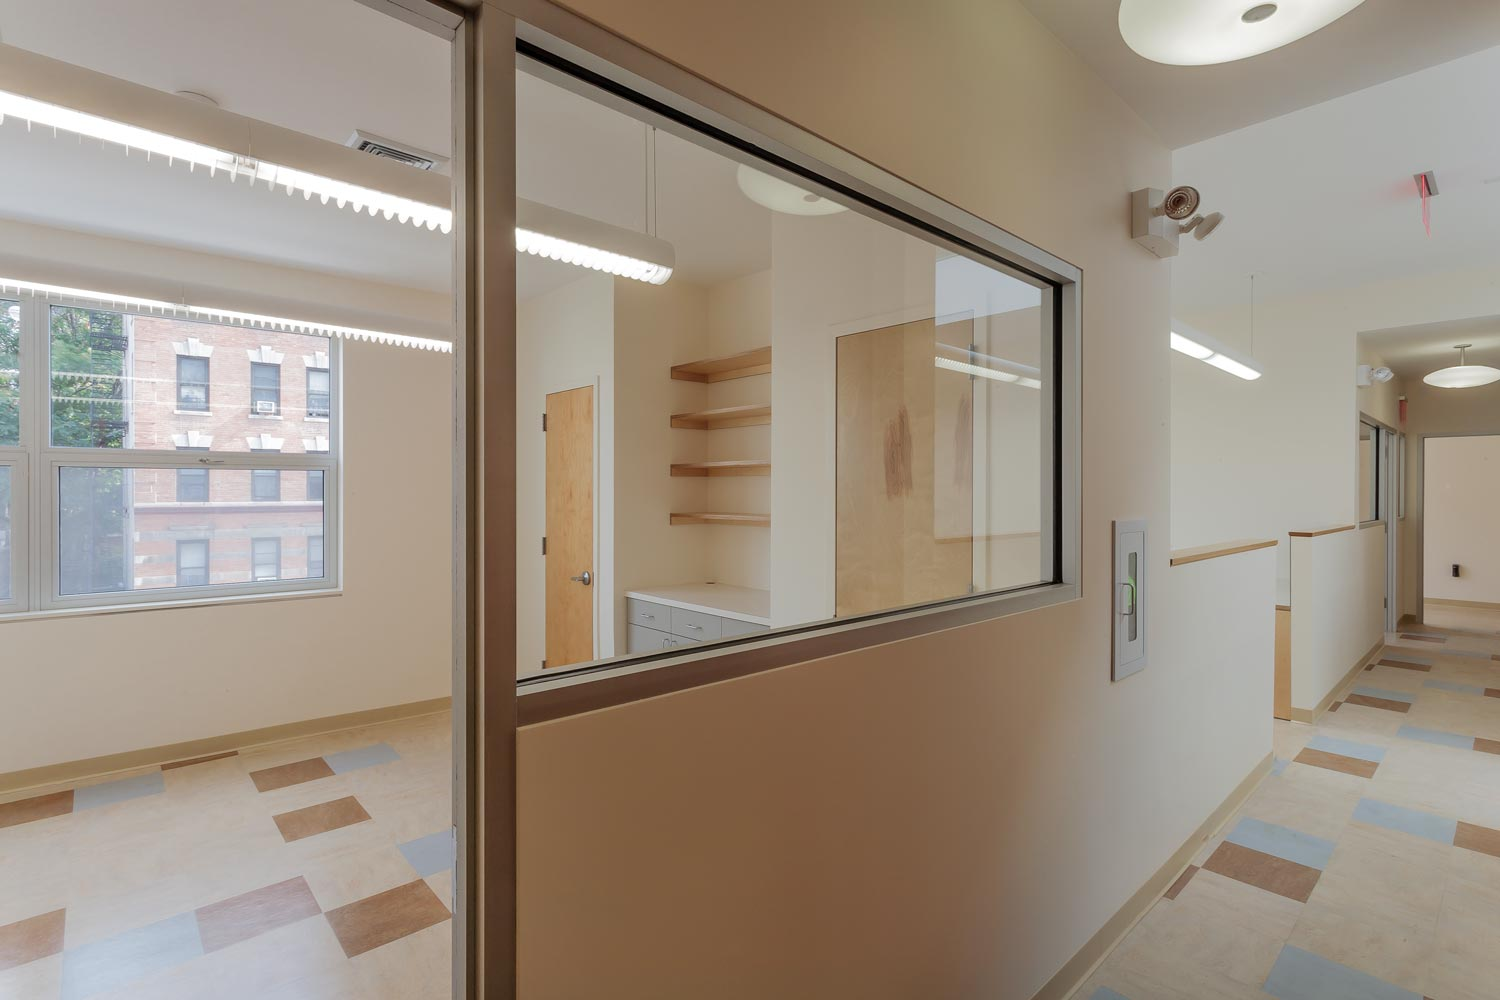 A second story expands the administrative offices of the non-profit BronxWorks.